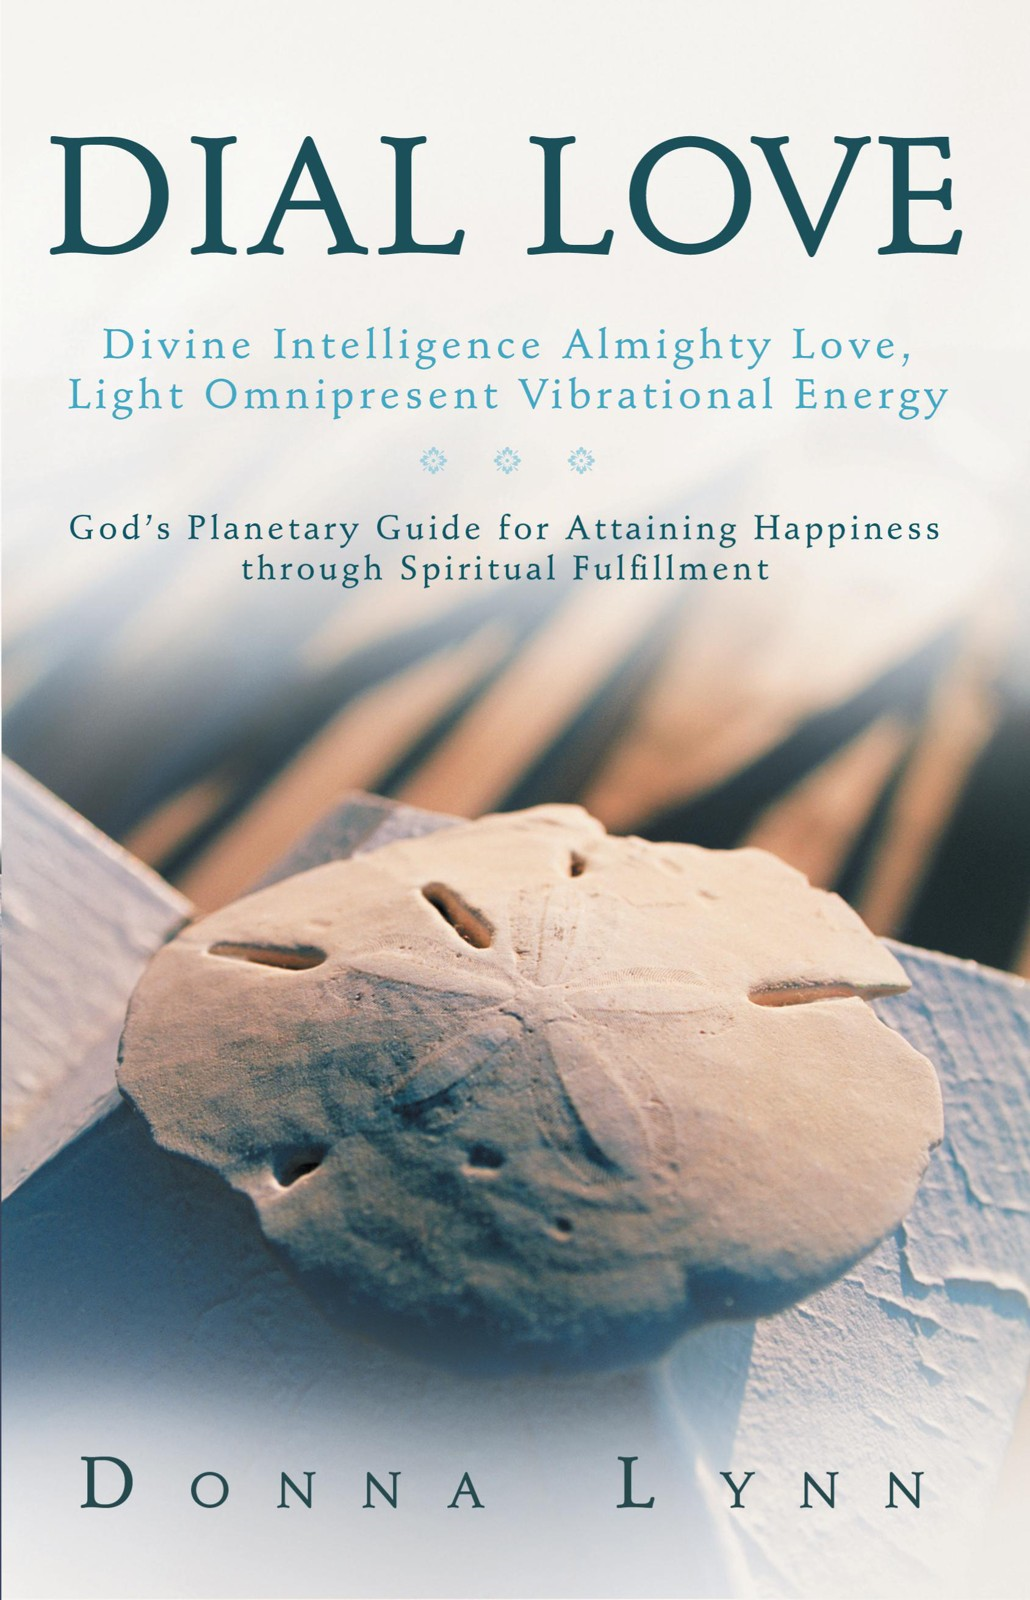 DIAL LOVE: Divine Intelligence Almighty Love, Light Omnipresent Vibrational Energy By: Donna Lynn